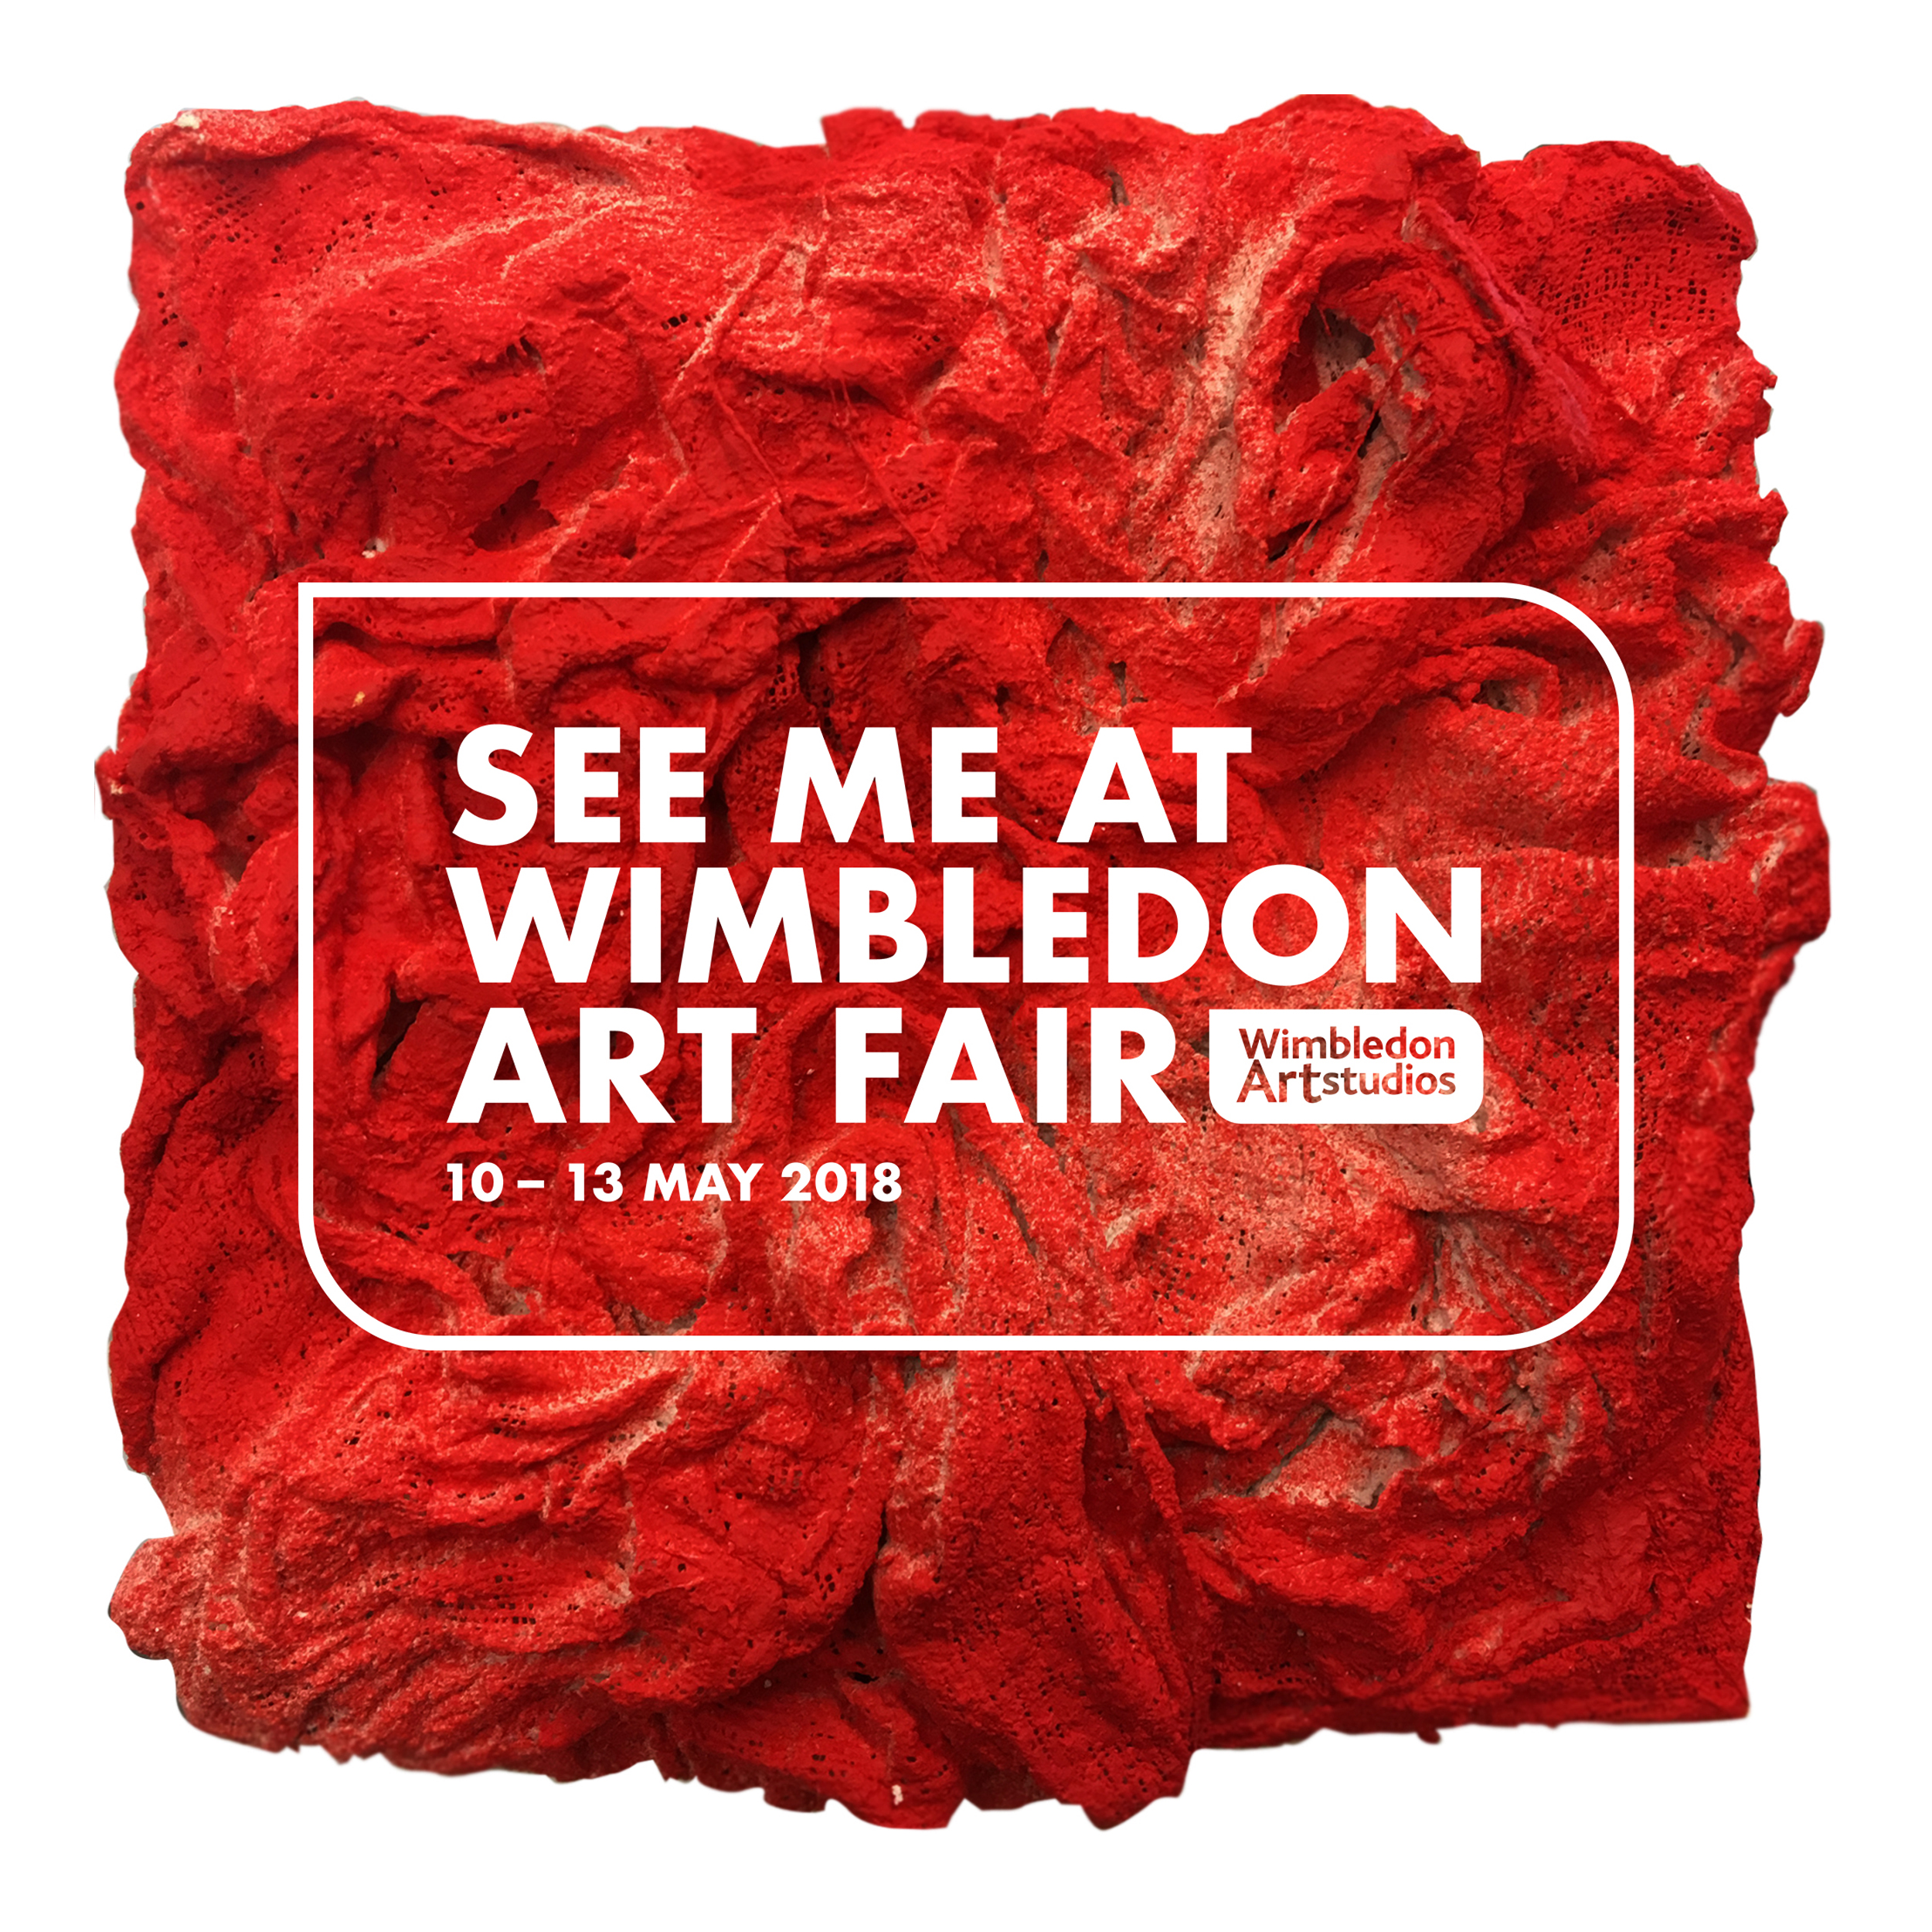 WIMBLEDON ART FAIR - Invitation Reminder 2.jpg